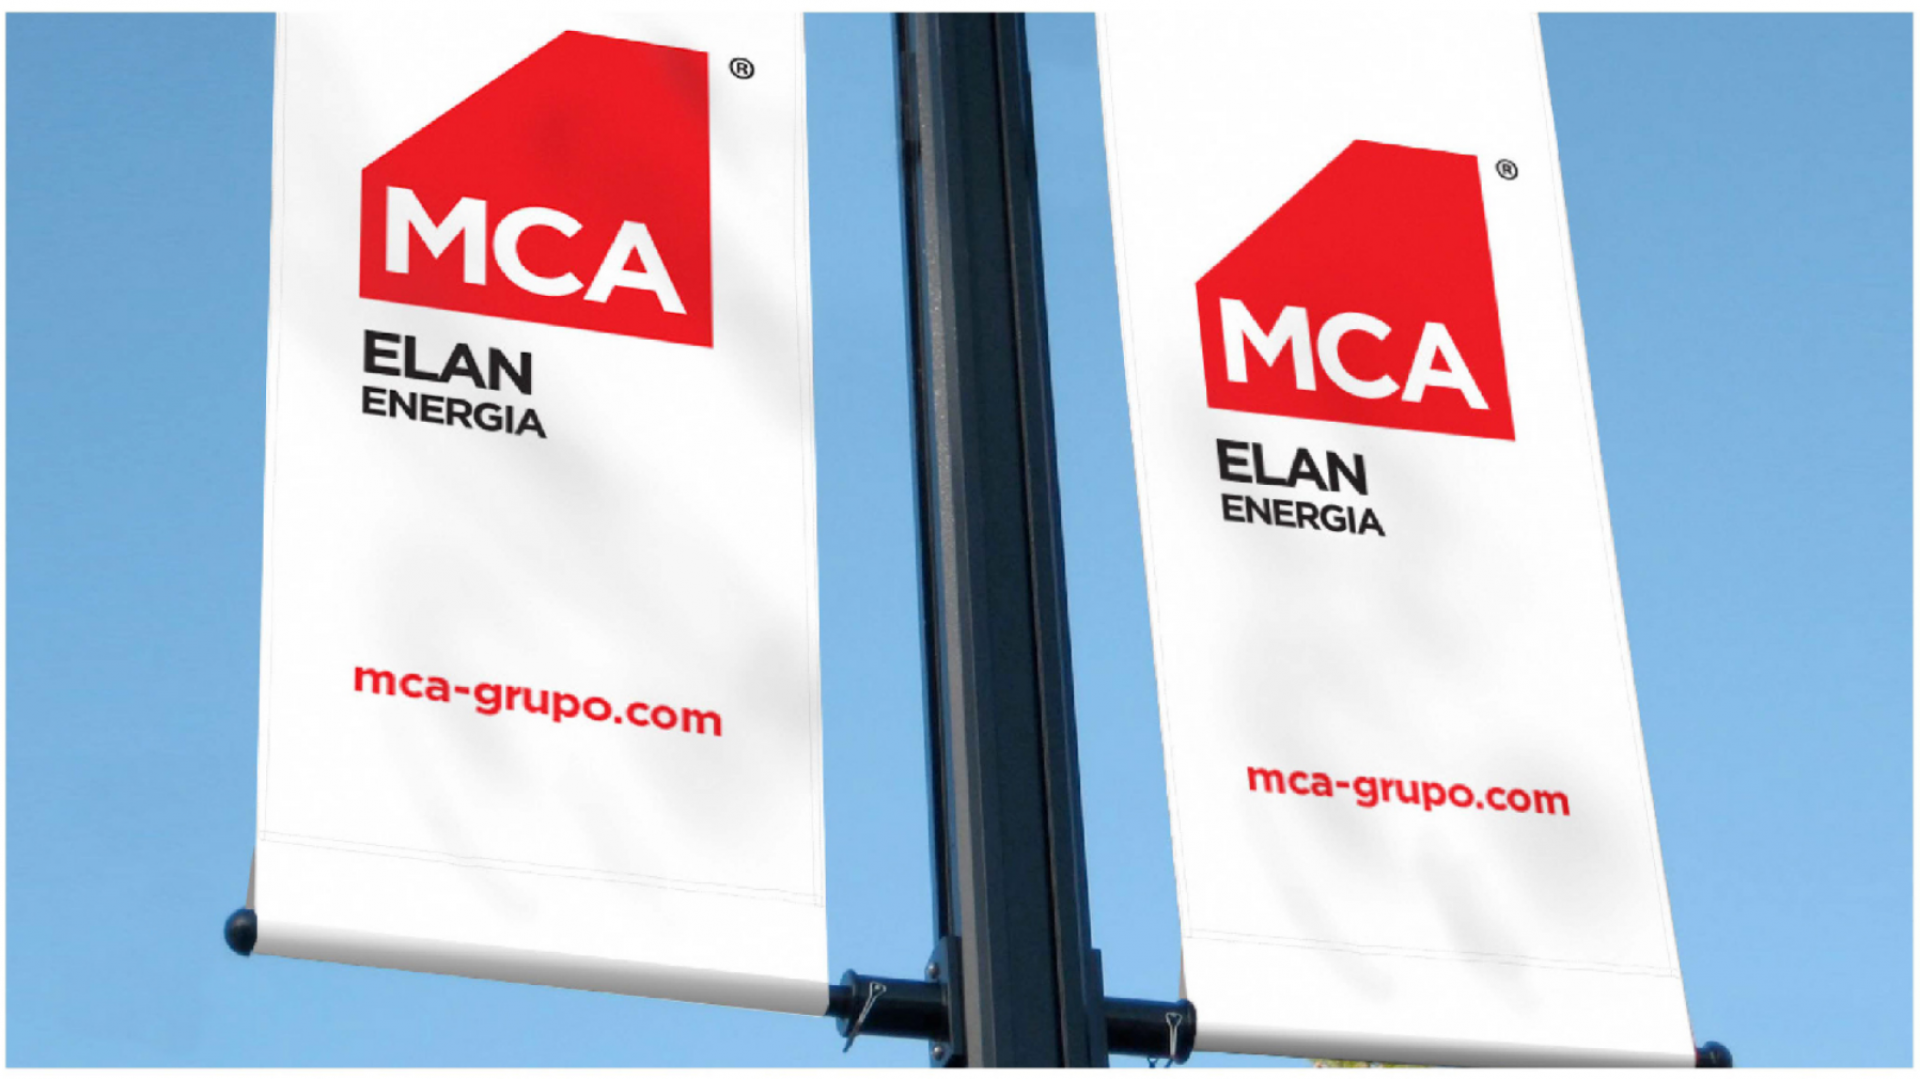 MCA - Professional services